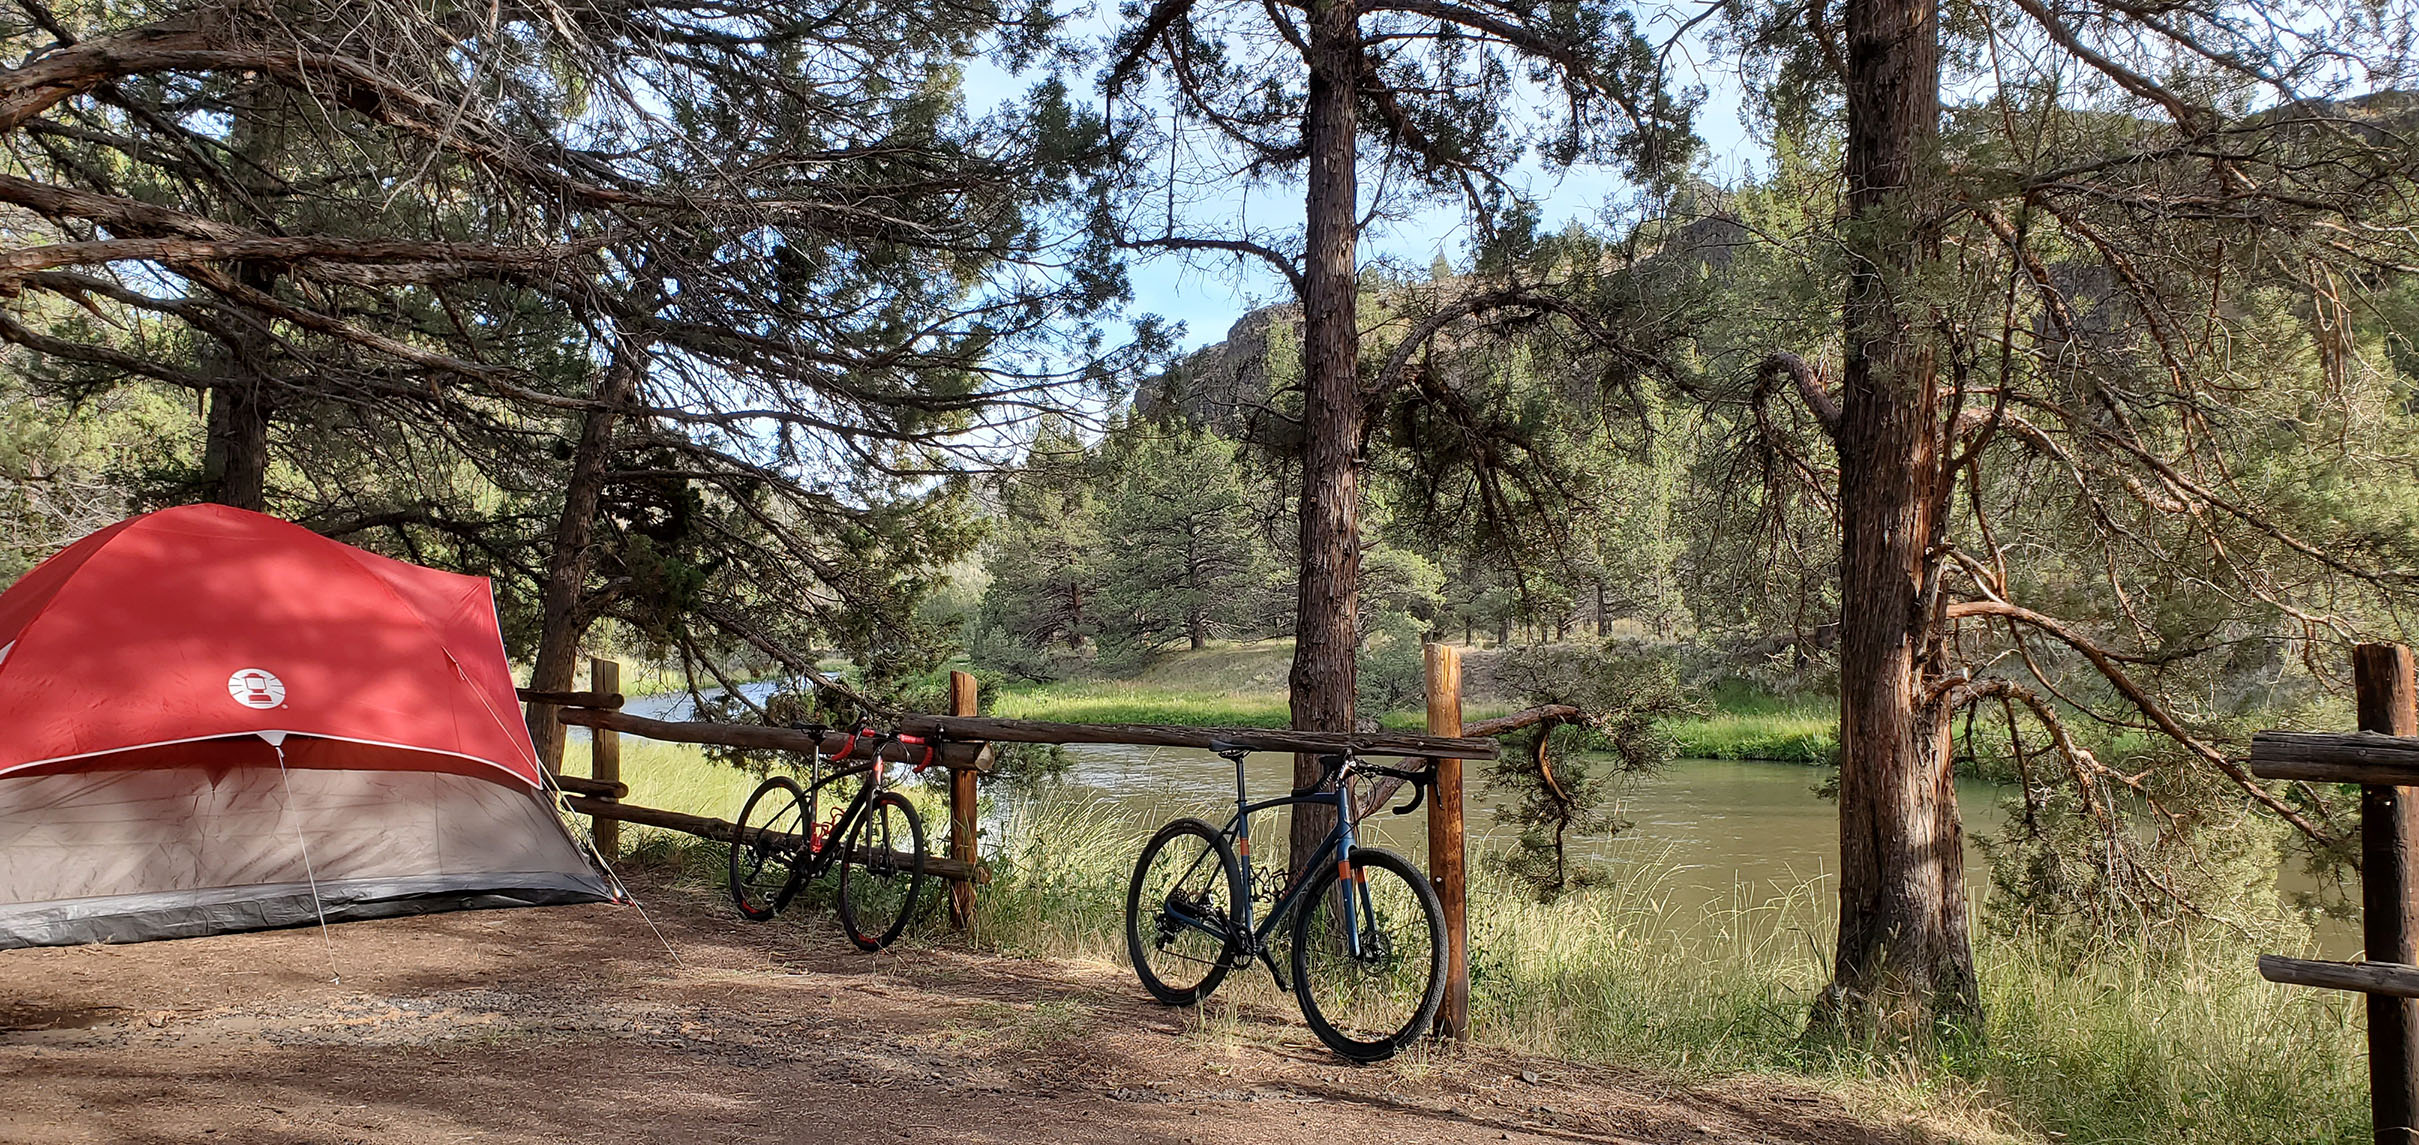 Camping at Crooked River